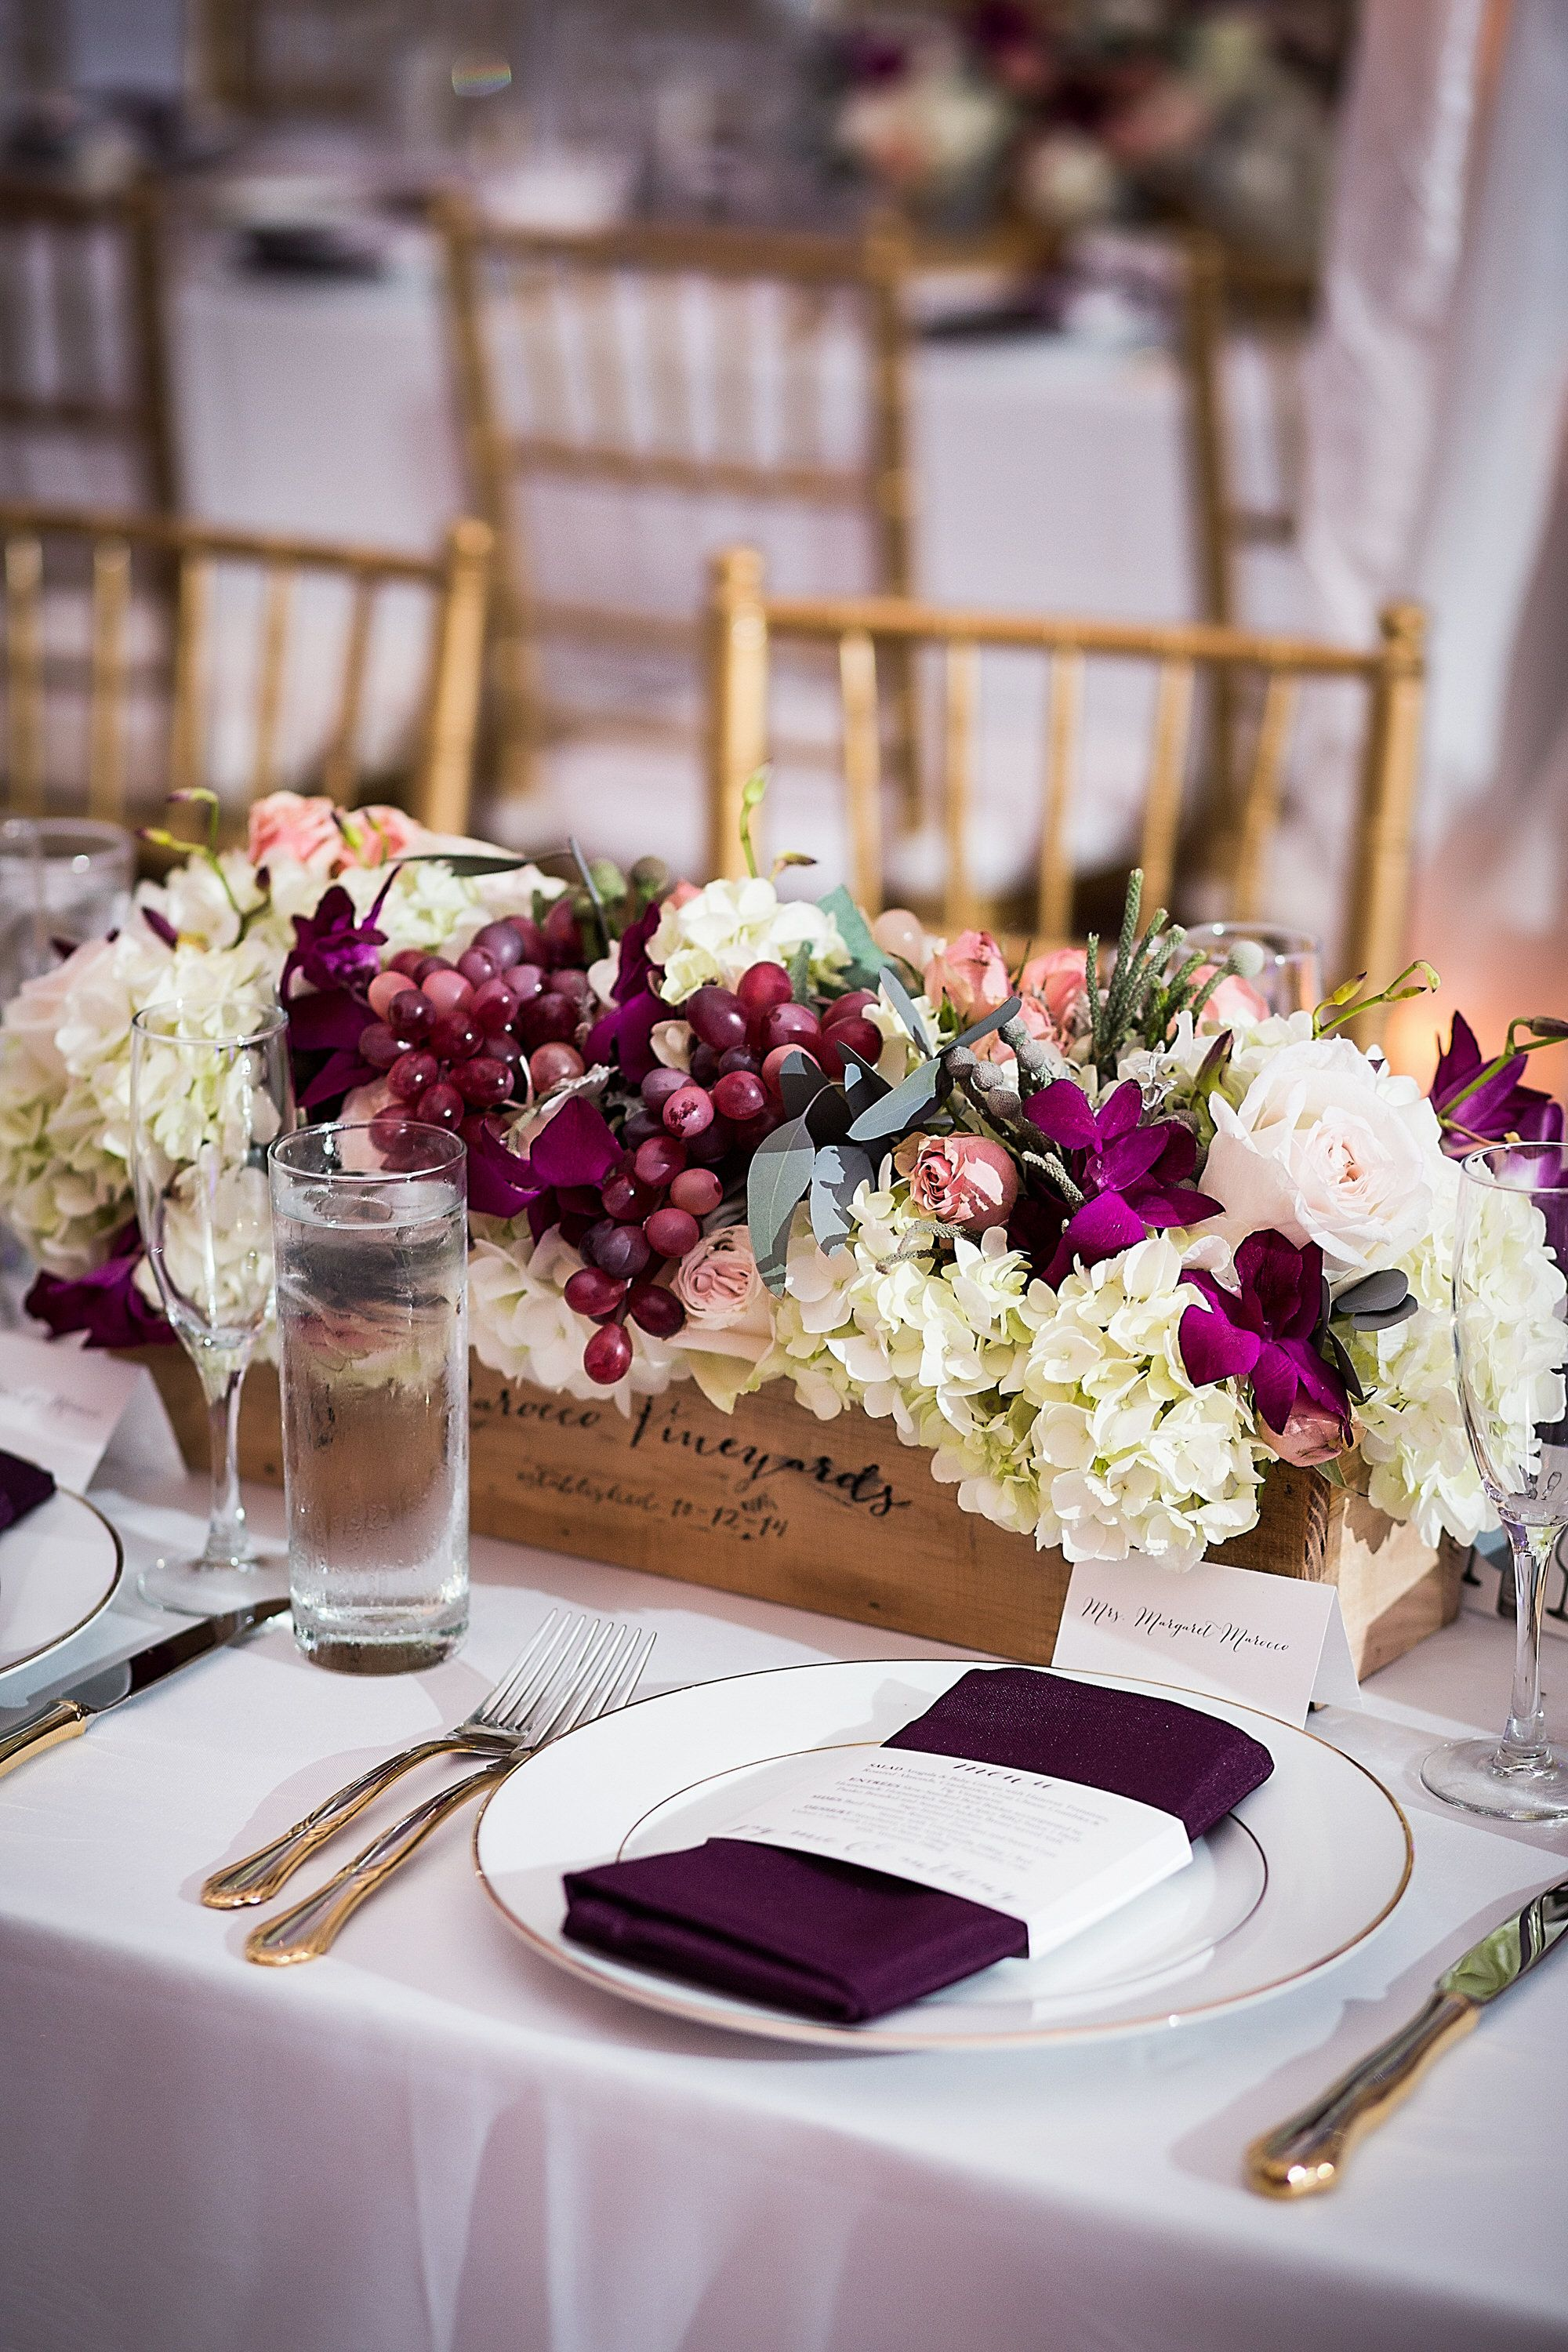 Wine themed centerpieces at the reception were made up of grapes wine themed centerpieces at the reception were made up of grapes fuchsia orchids white hydrangeas blush roses and eucalyptus leaves arranged in wine junglespirit Image collections